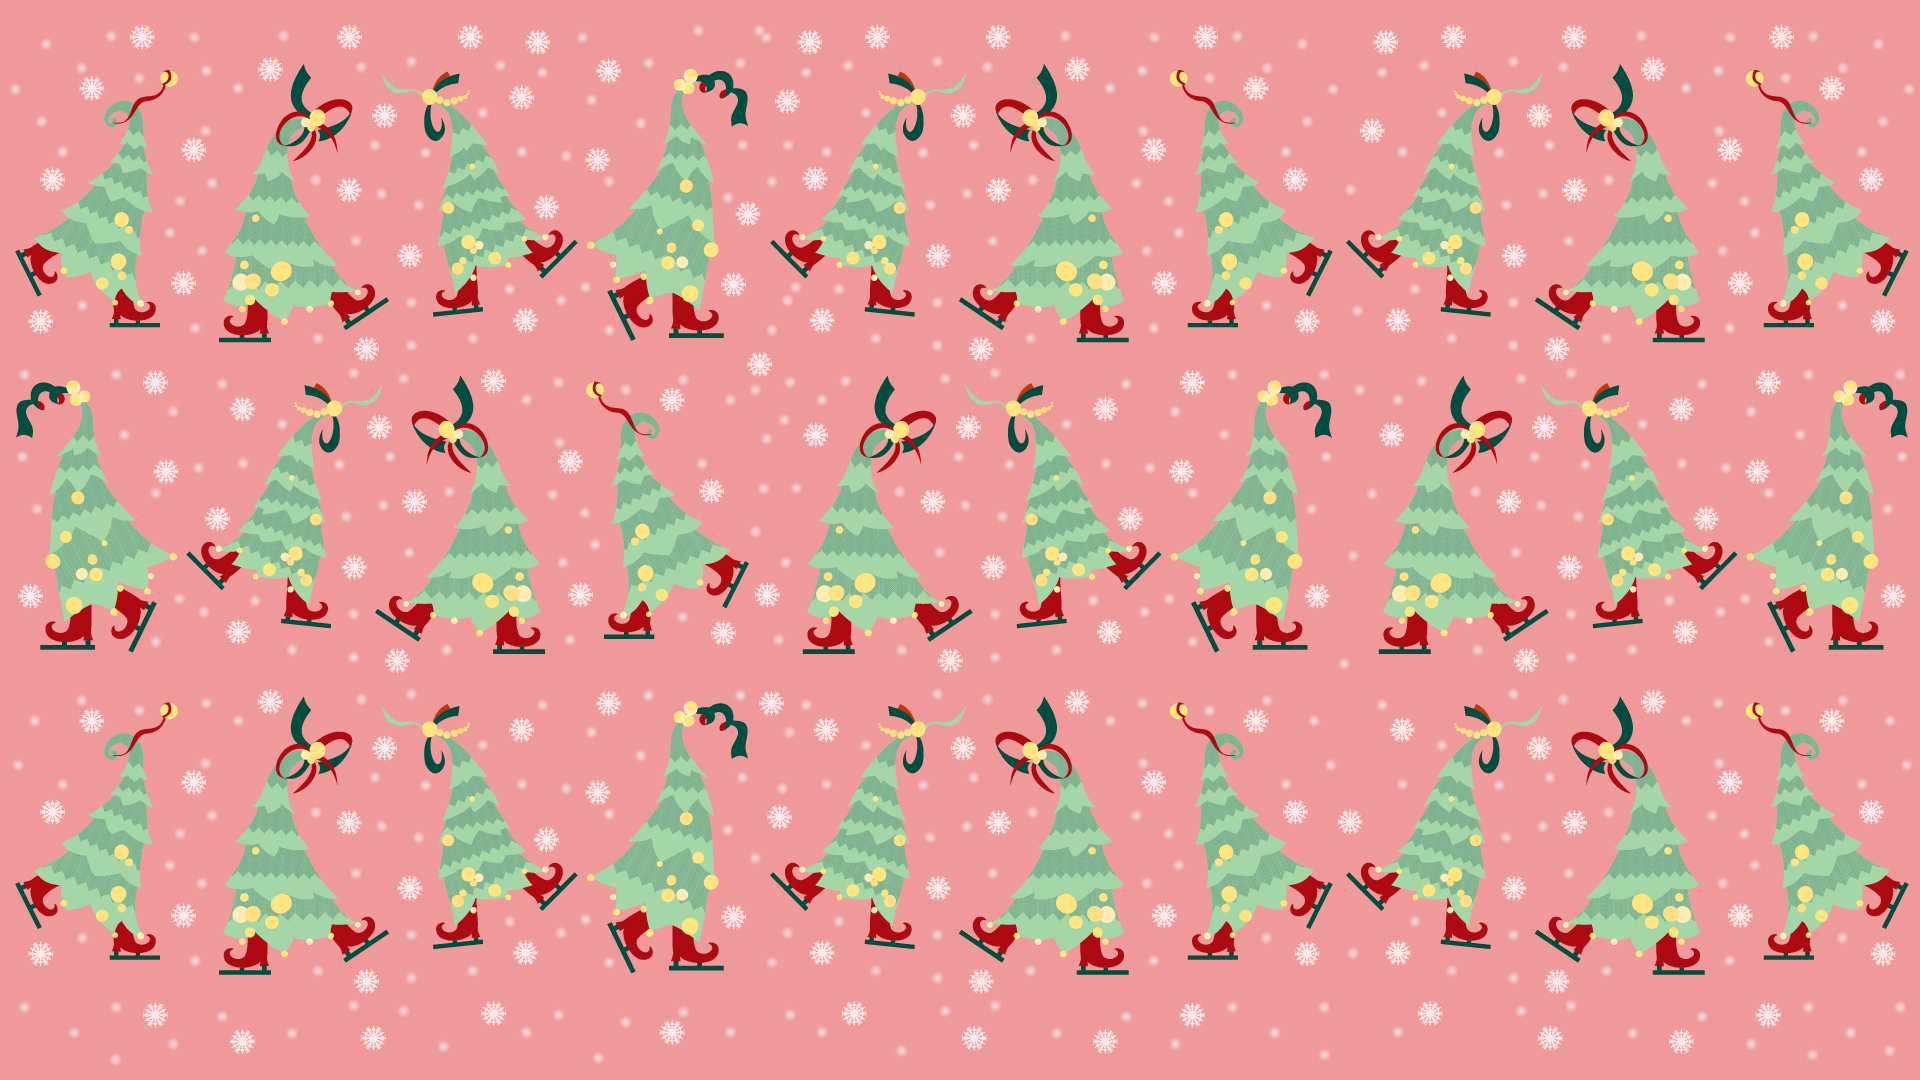 Wallpaper For Laptop Free 5 Free Festive Christmas Wallpapers For Laptops And Devices